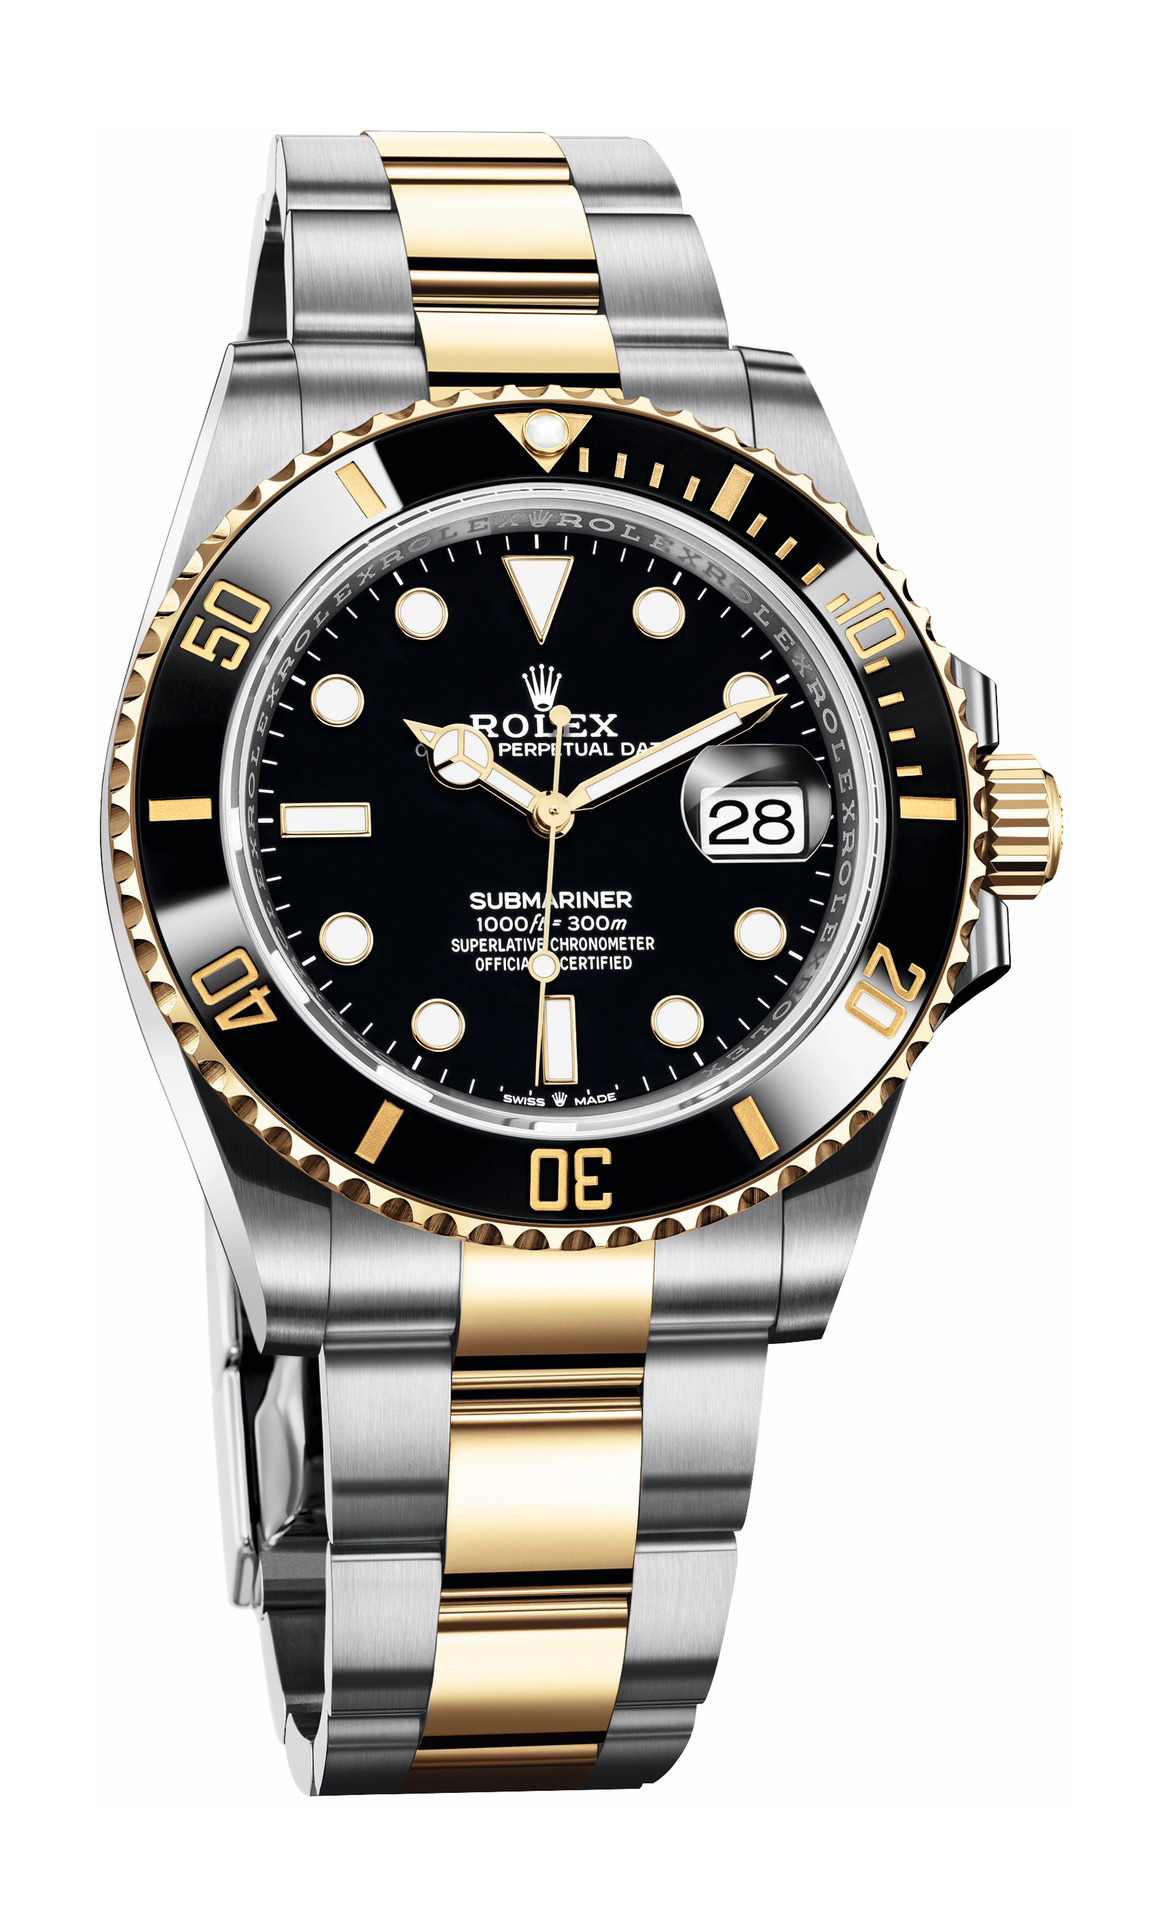 Rolex Oyster Perpetual Submariner Date - M126613LN-0002